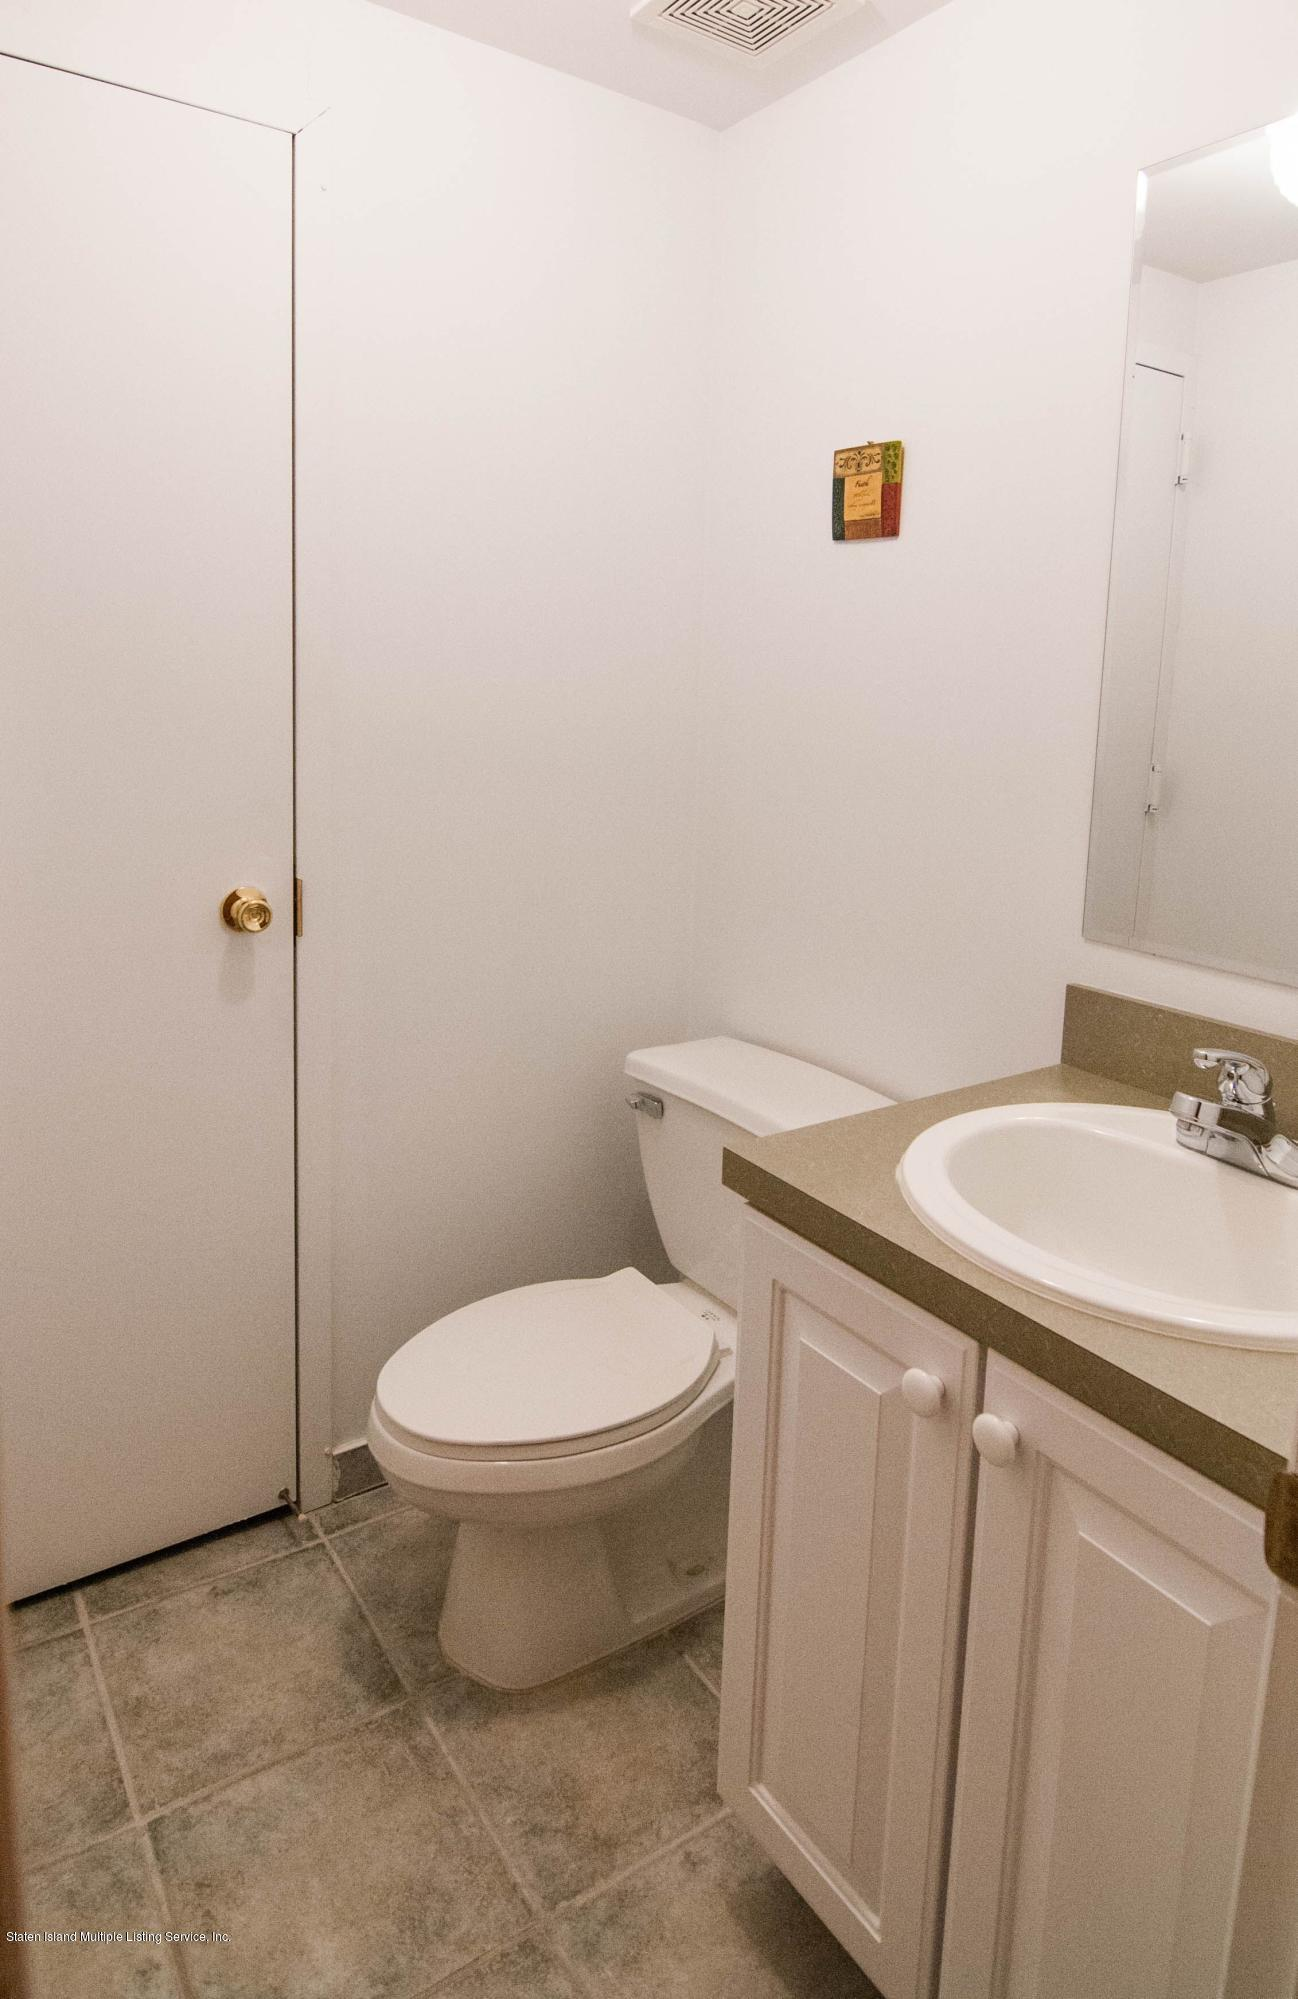 Single Family - Attached 56 Endview Street  Staten Island, NY 10312, MLS-1131439-27